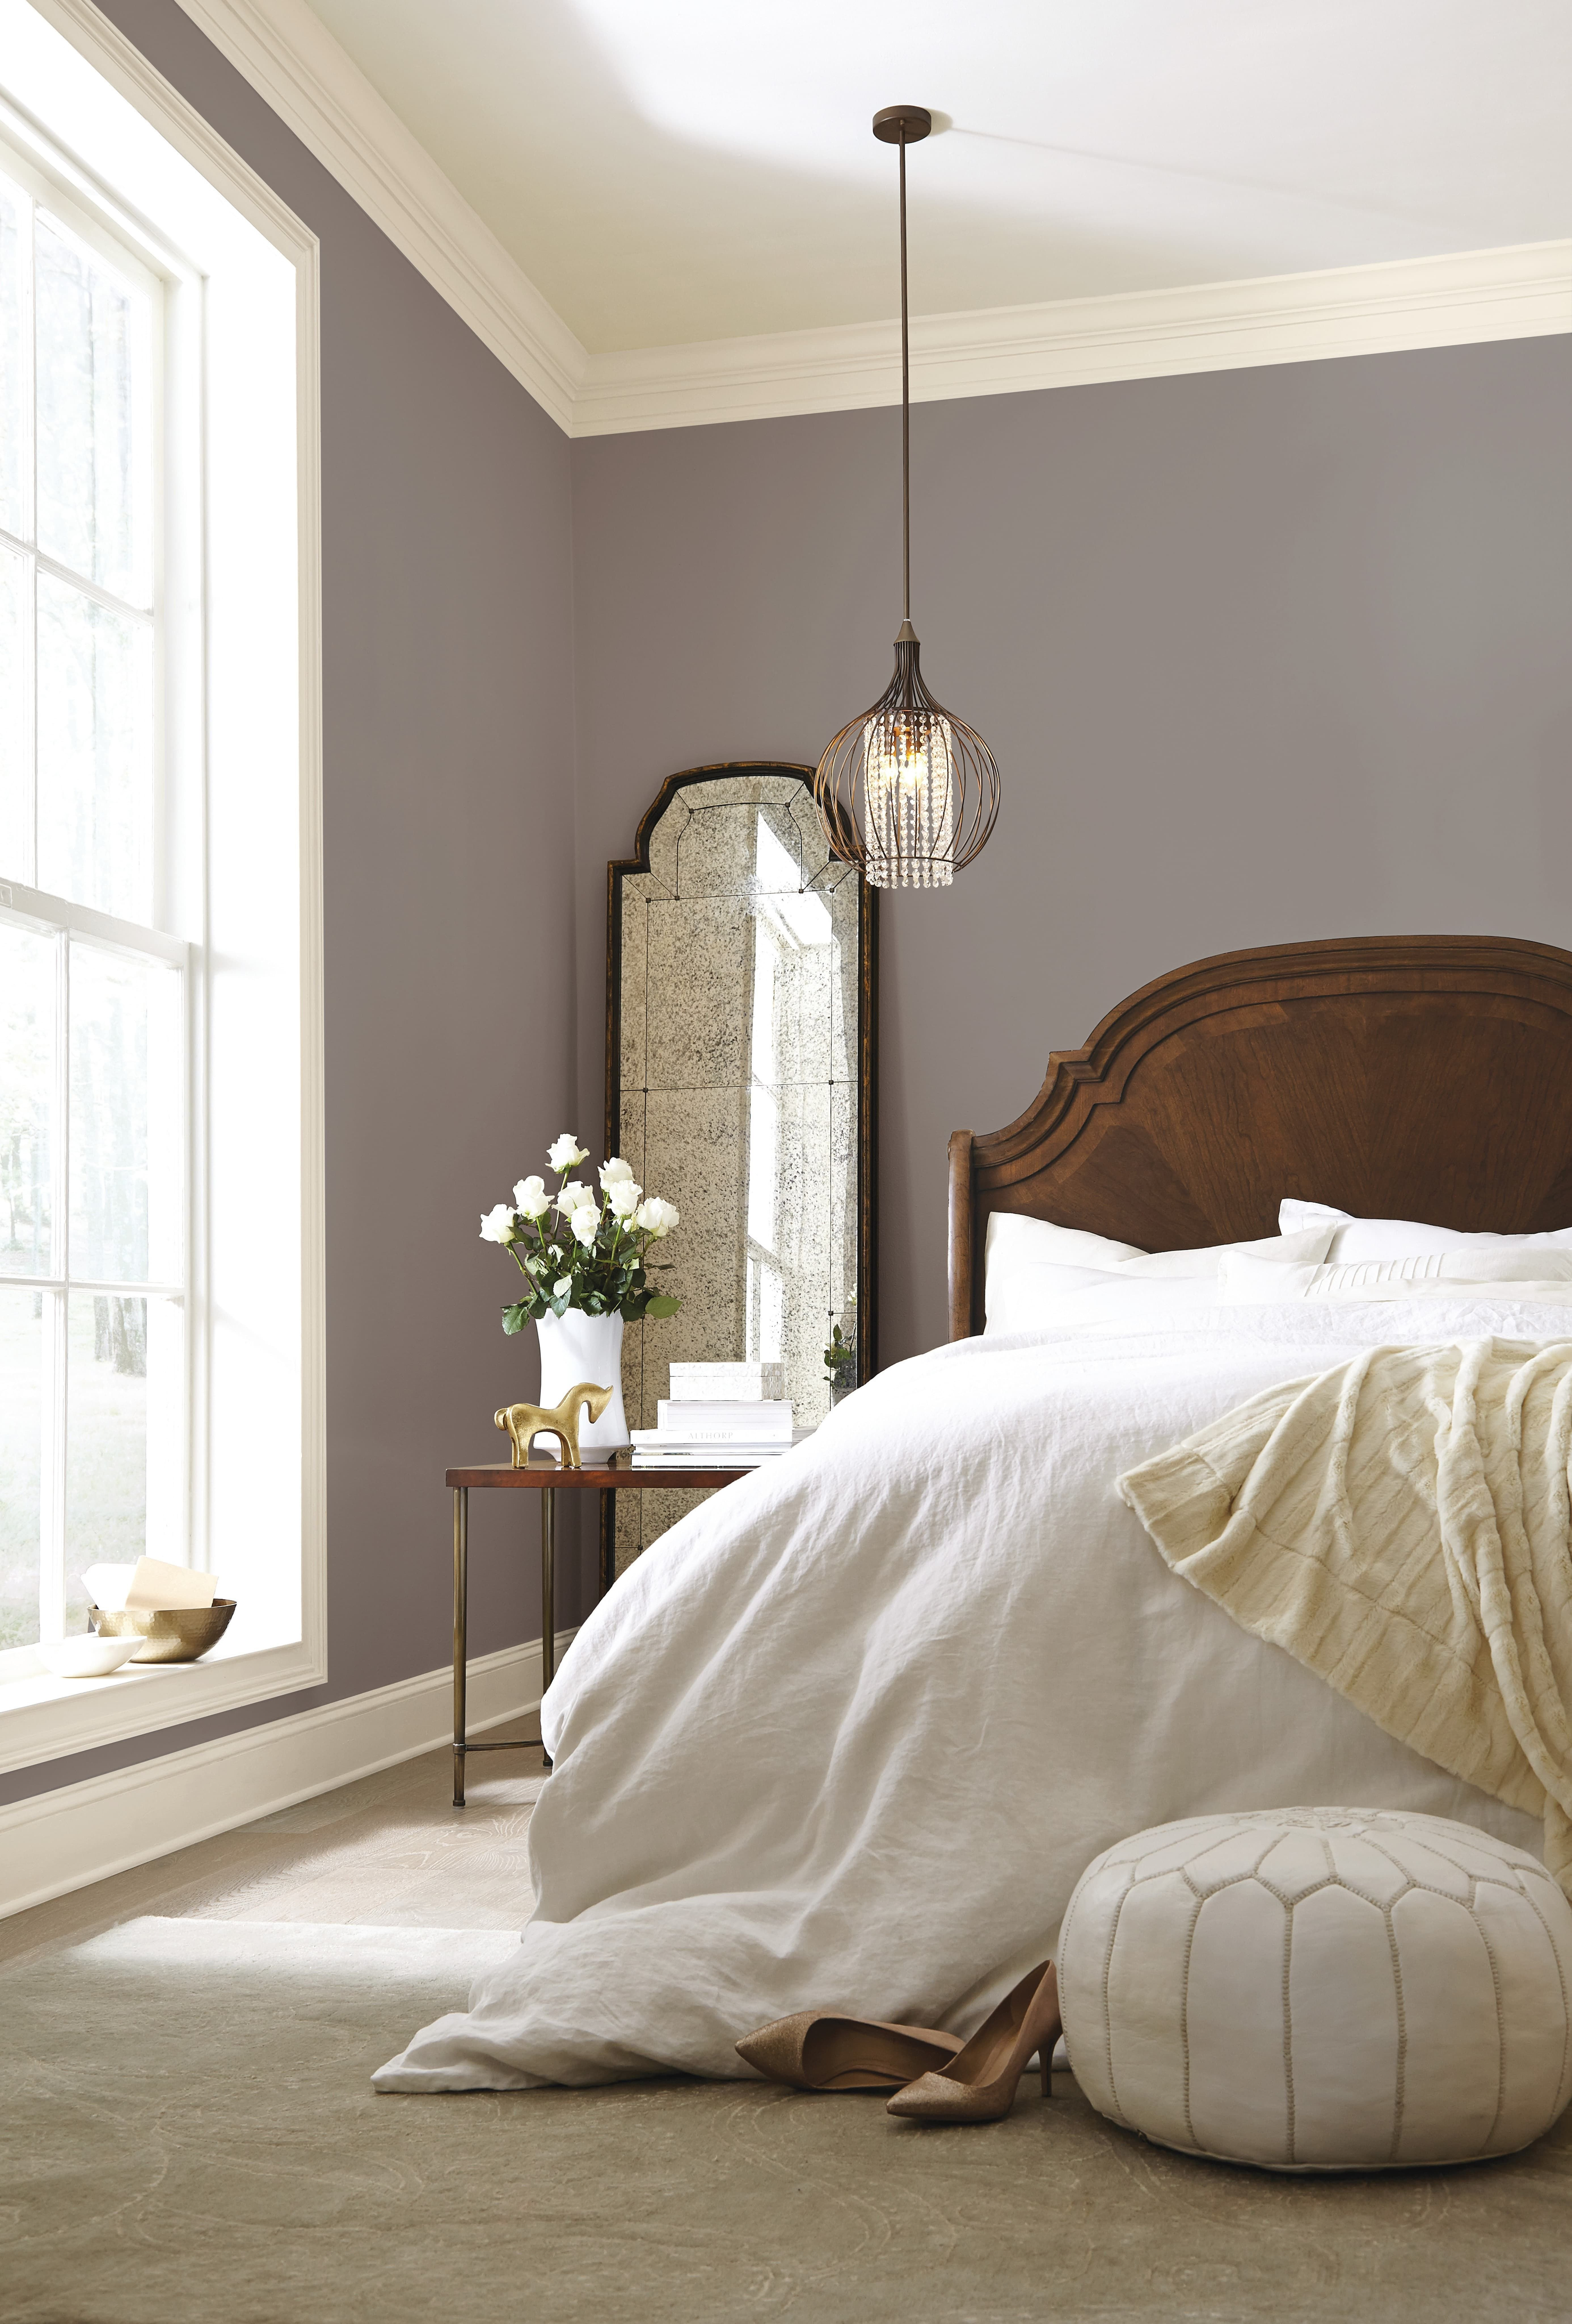 Ideas for Bedroom Color Luxury the 2017 Colors Of the Year According to Paint Panies